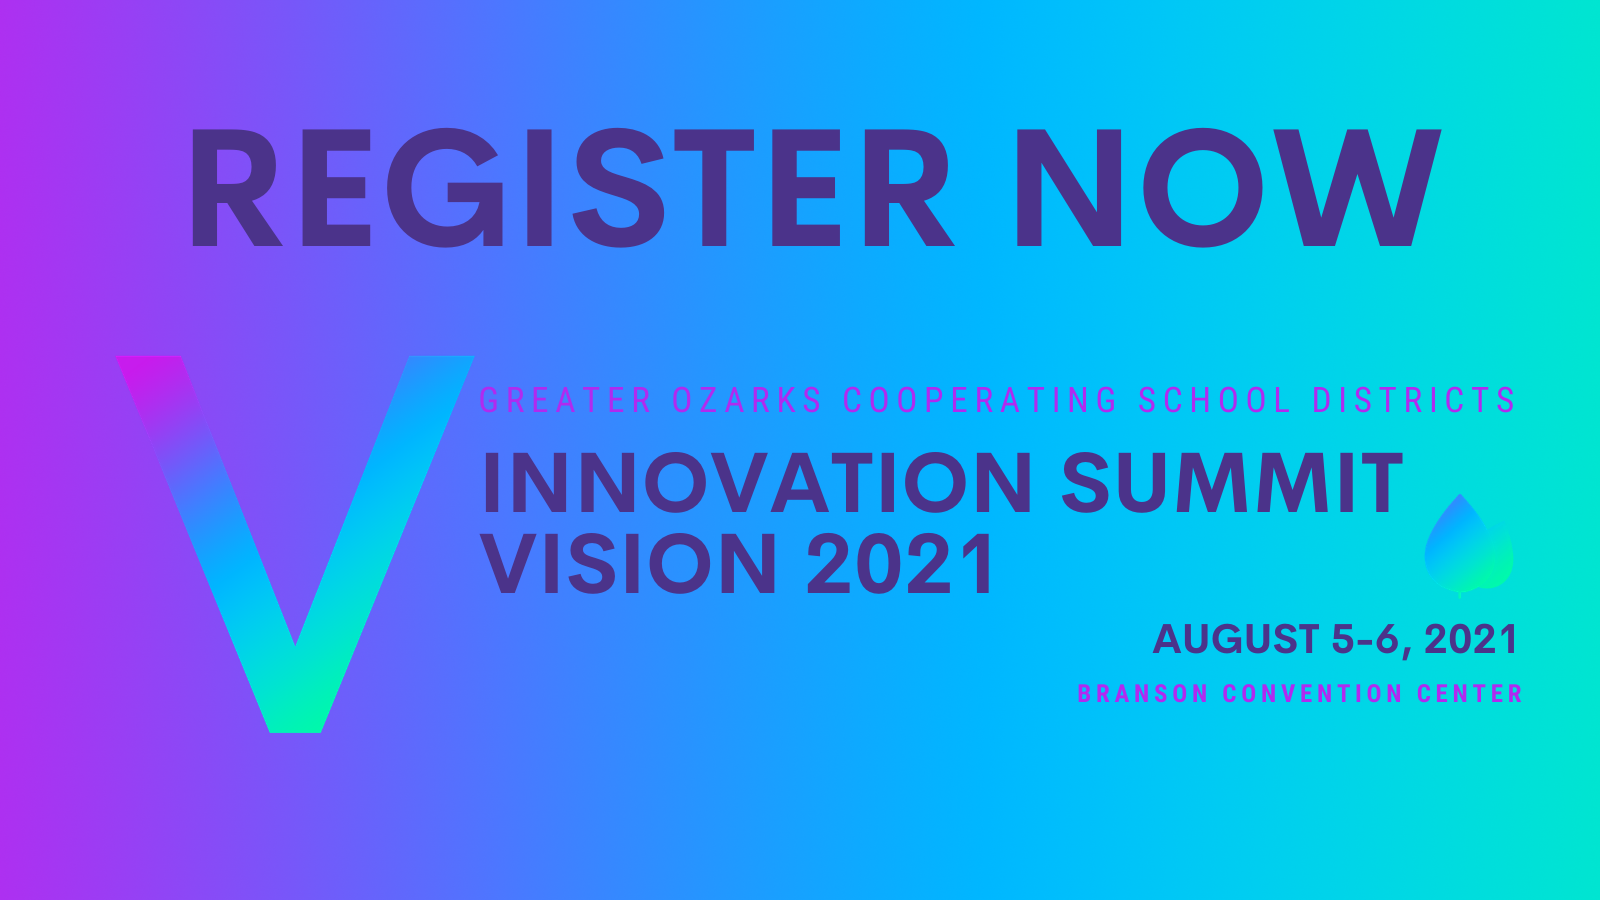 Register Now for the Innovation Summit